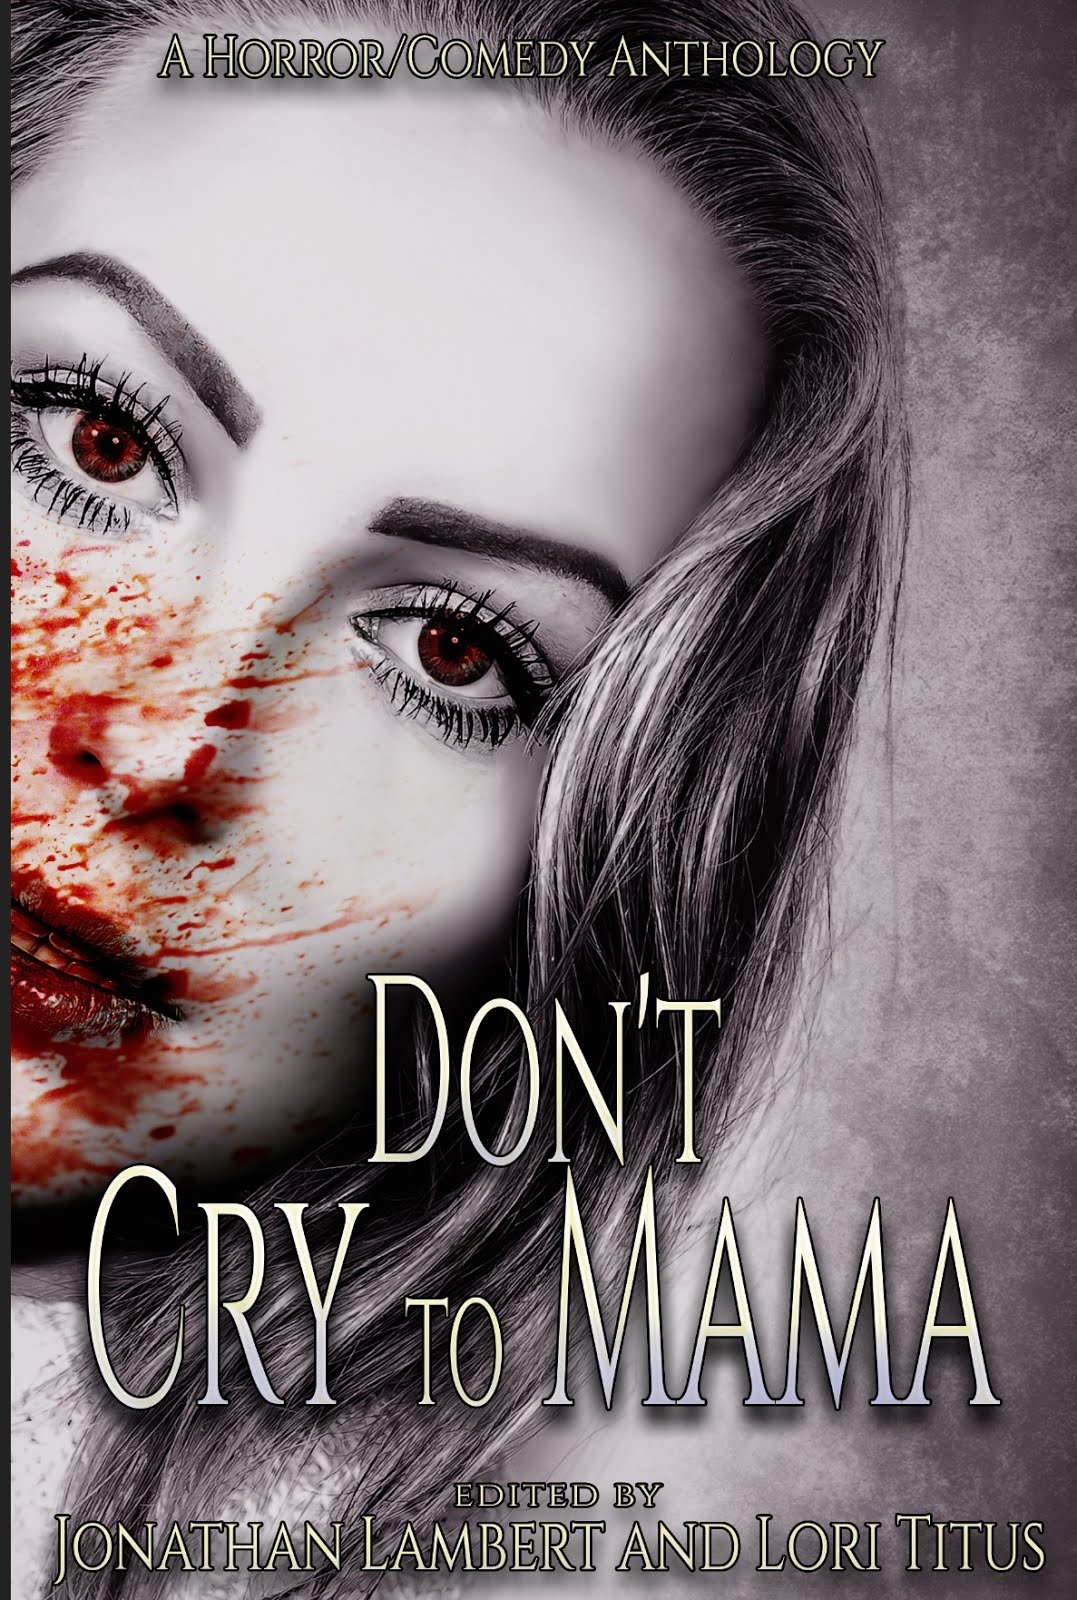 Don't Cry to Mama